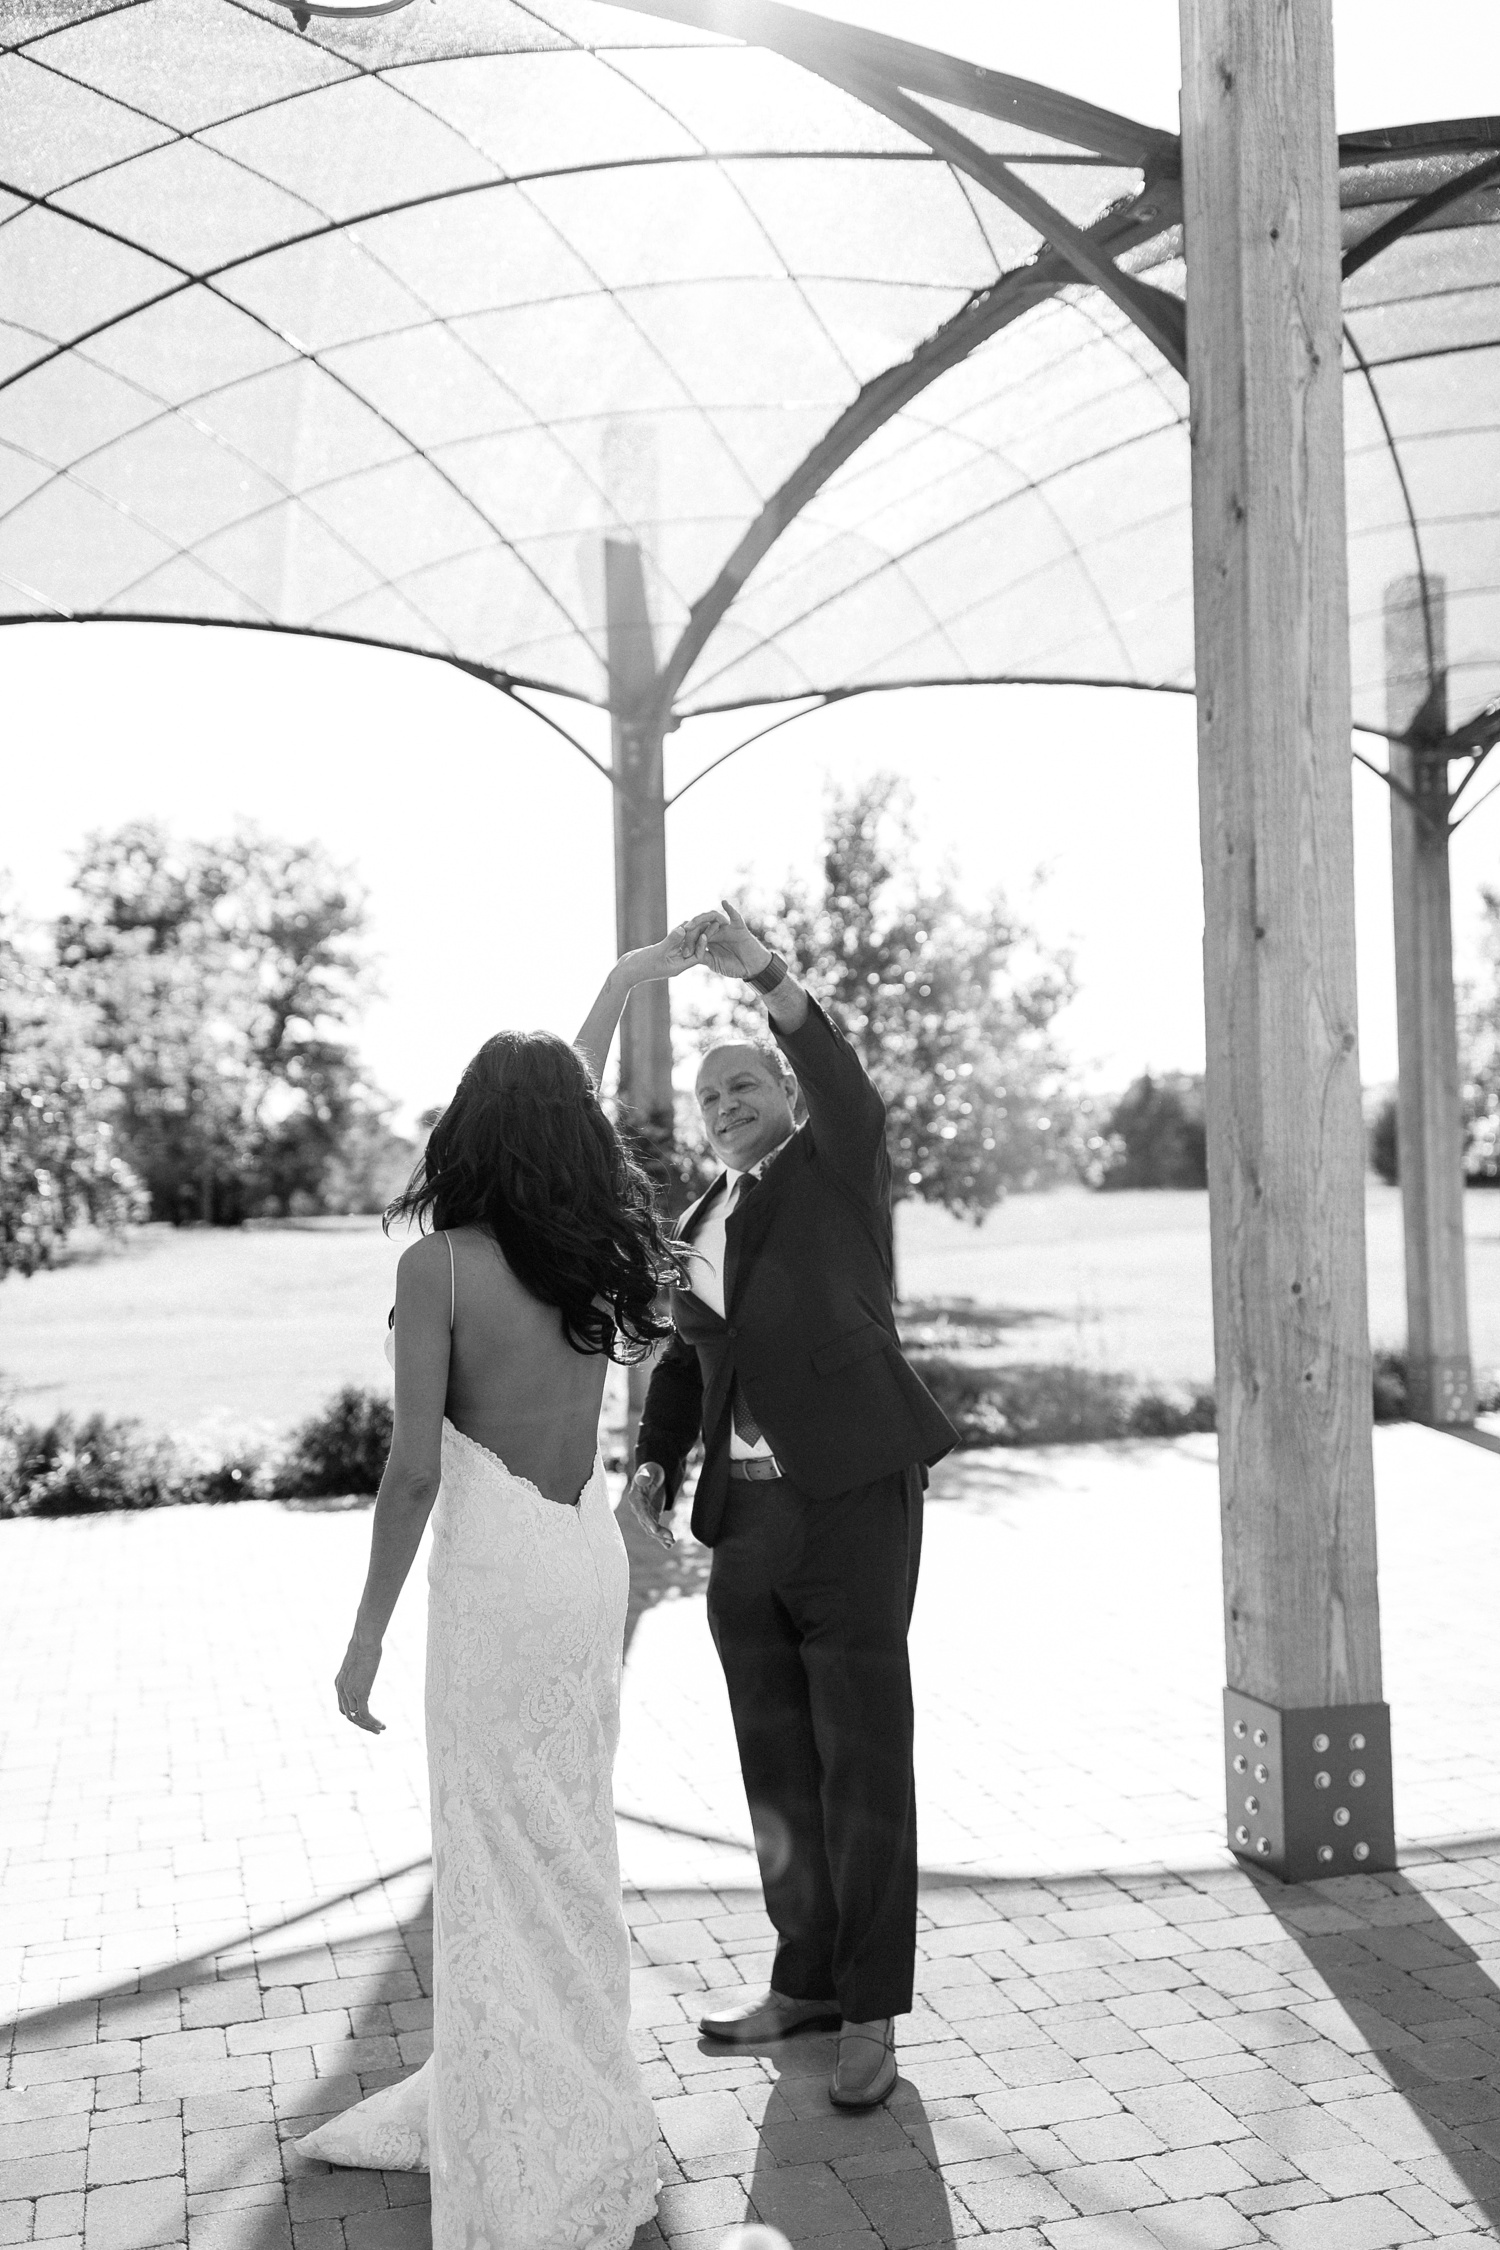 Erica + Henry | a bohemian inspired wedding at Chandlers Gardens in Salina, TX by North Texas Wedding Photographer Rachel Meagan Photography 039